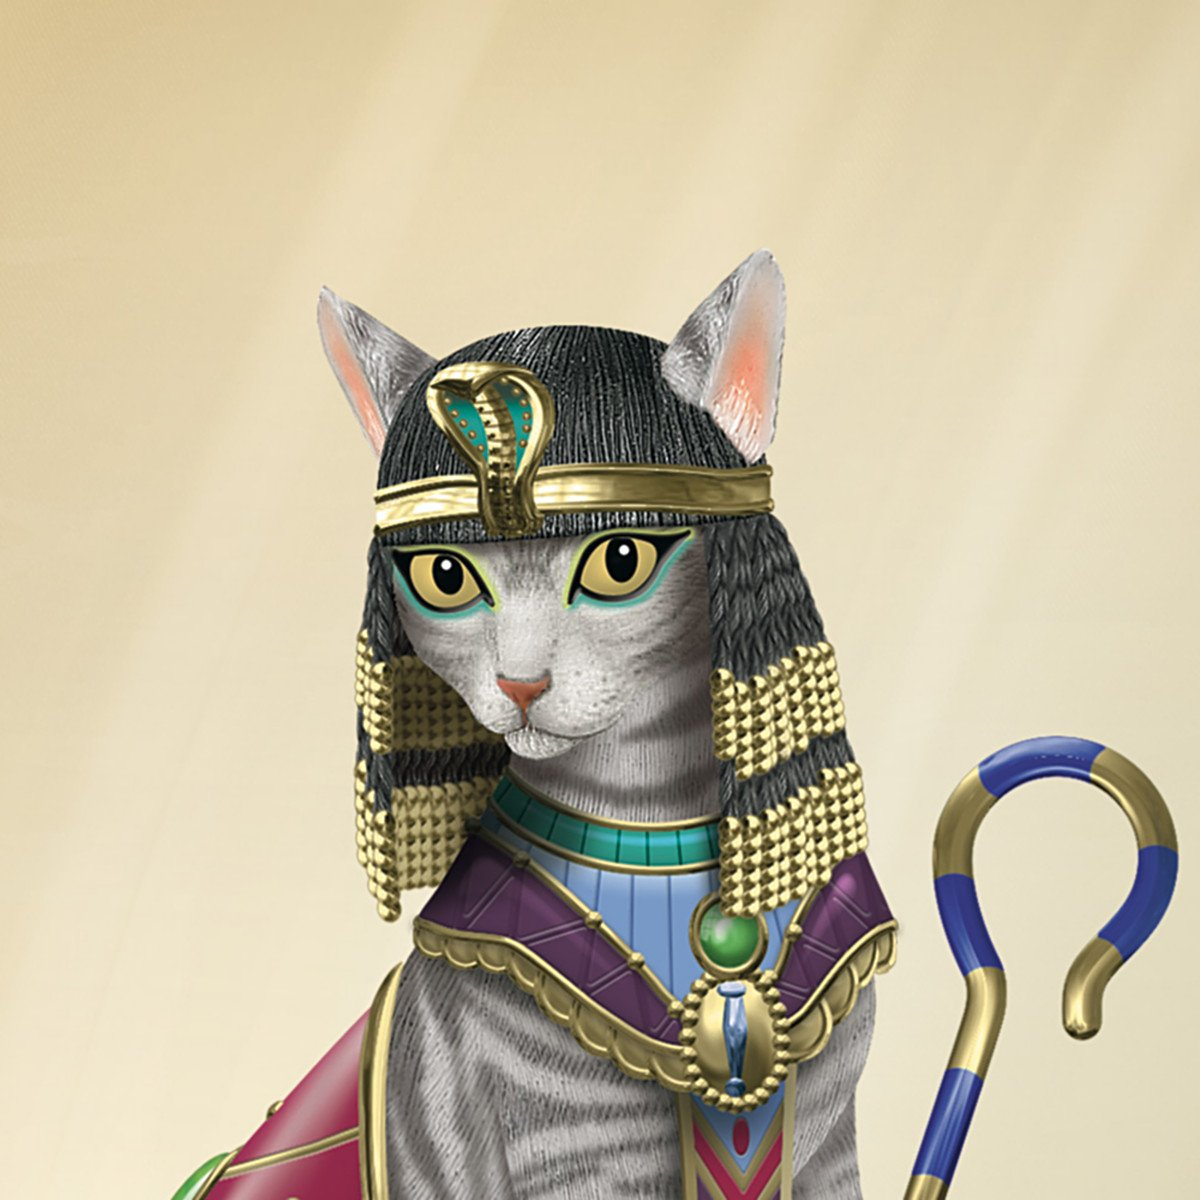 Cleo-CAT-Tra Cat Figurine Dressed Like Cleopatra With Elaborate Headdress by The Hamilton Collection